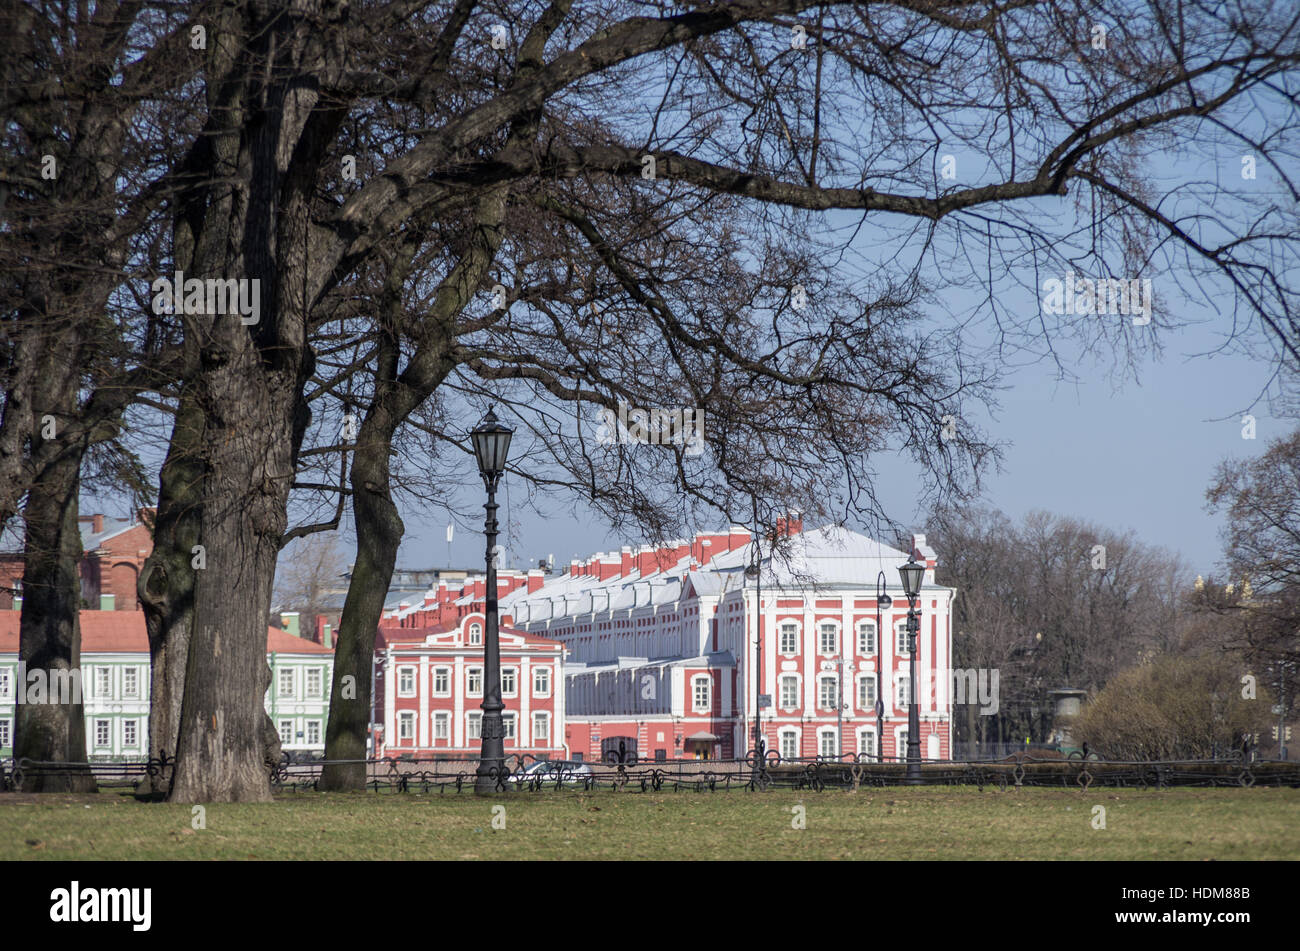 Lantern and trees in Alexandrovsky garden in Saint Petersburg city center with Twelve Colleges building at background, - Stock Image